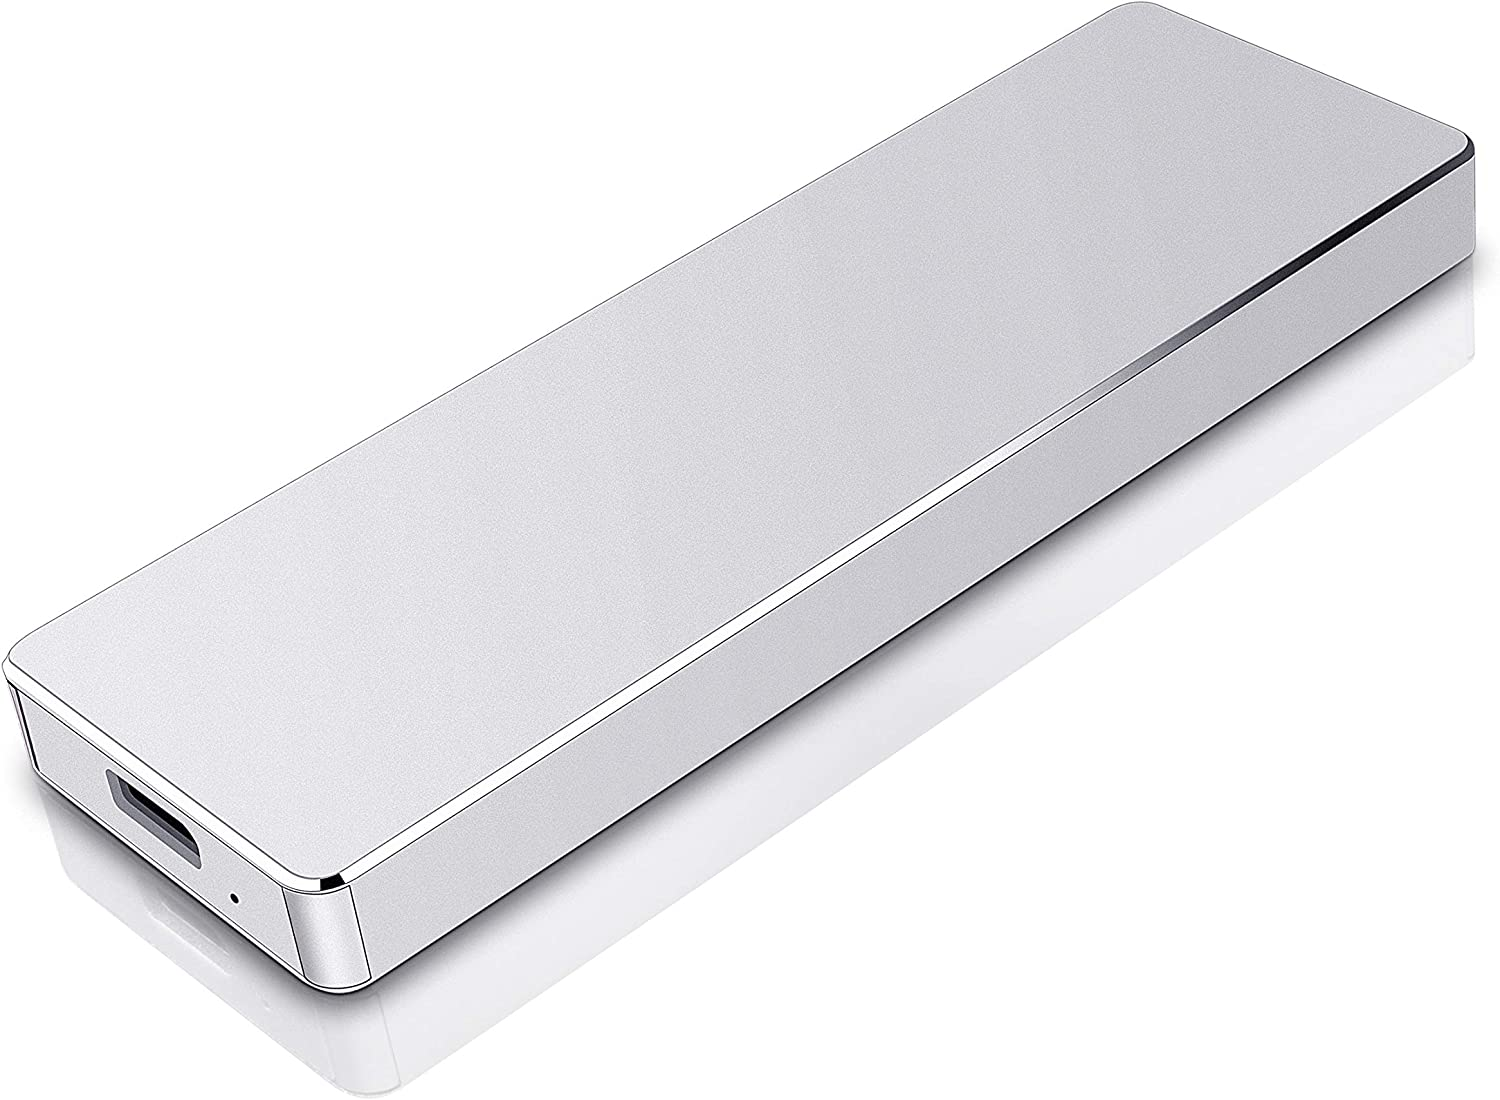 Disco Duro Externo 2tb USB 3.1 para Mac, PC, MacBook, Chromebook, Xbox (1tb, Plata)